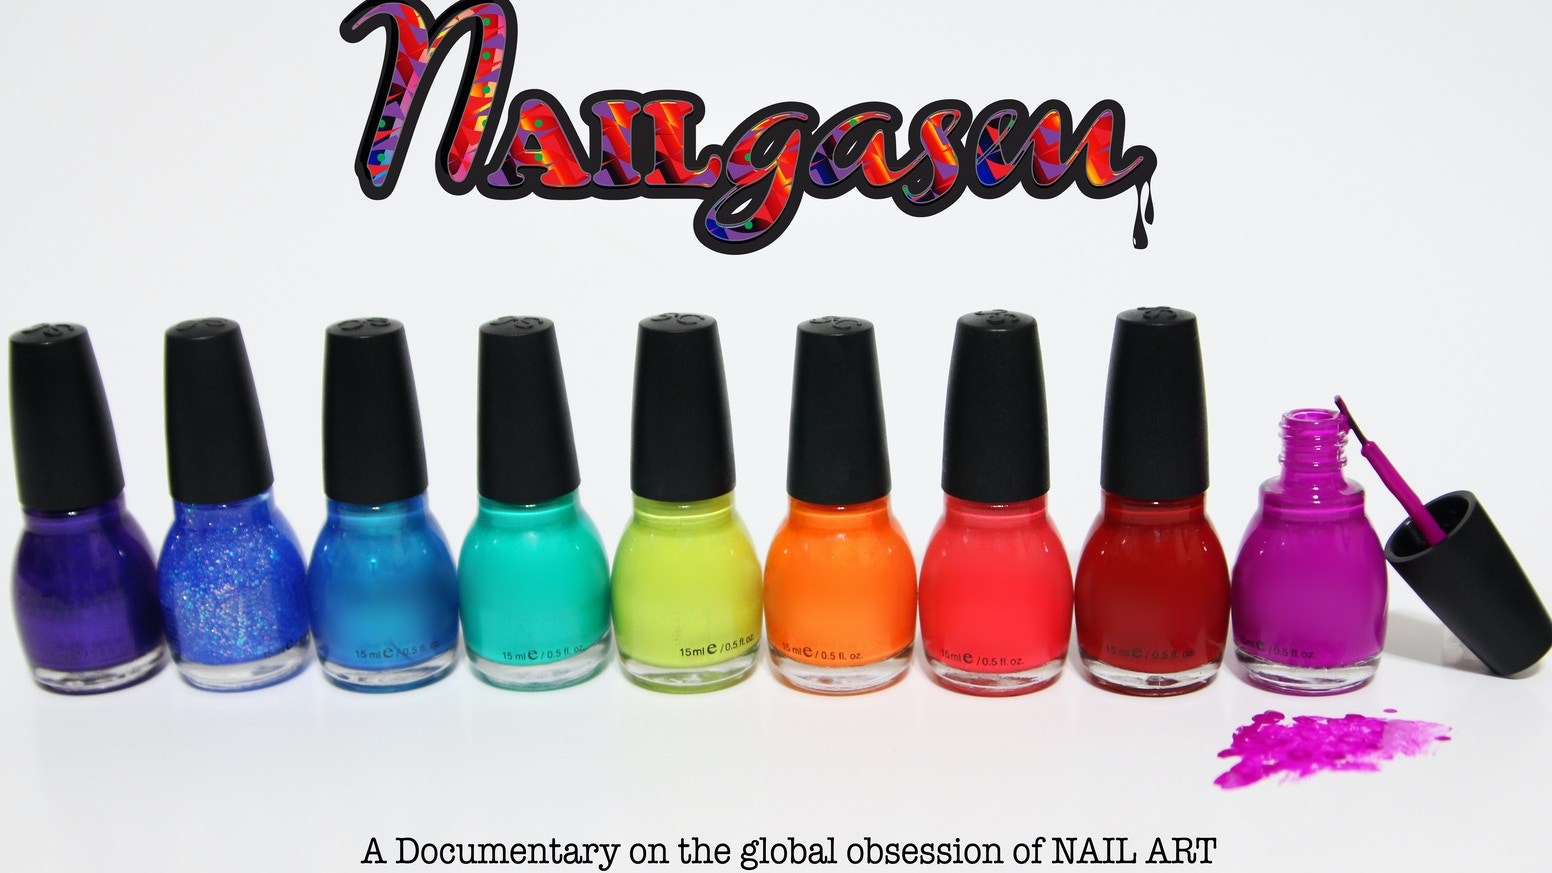 NAILgasm: A Documentary on the global obsession of NAIL ART by Brass ...